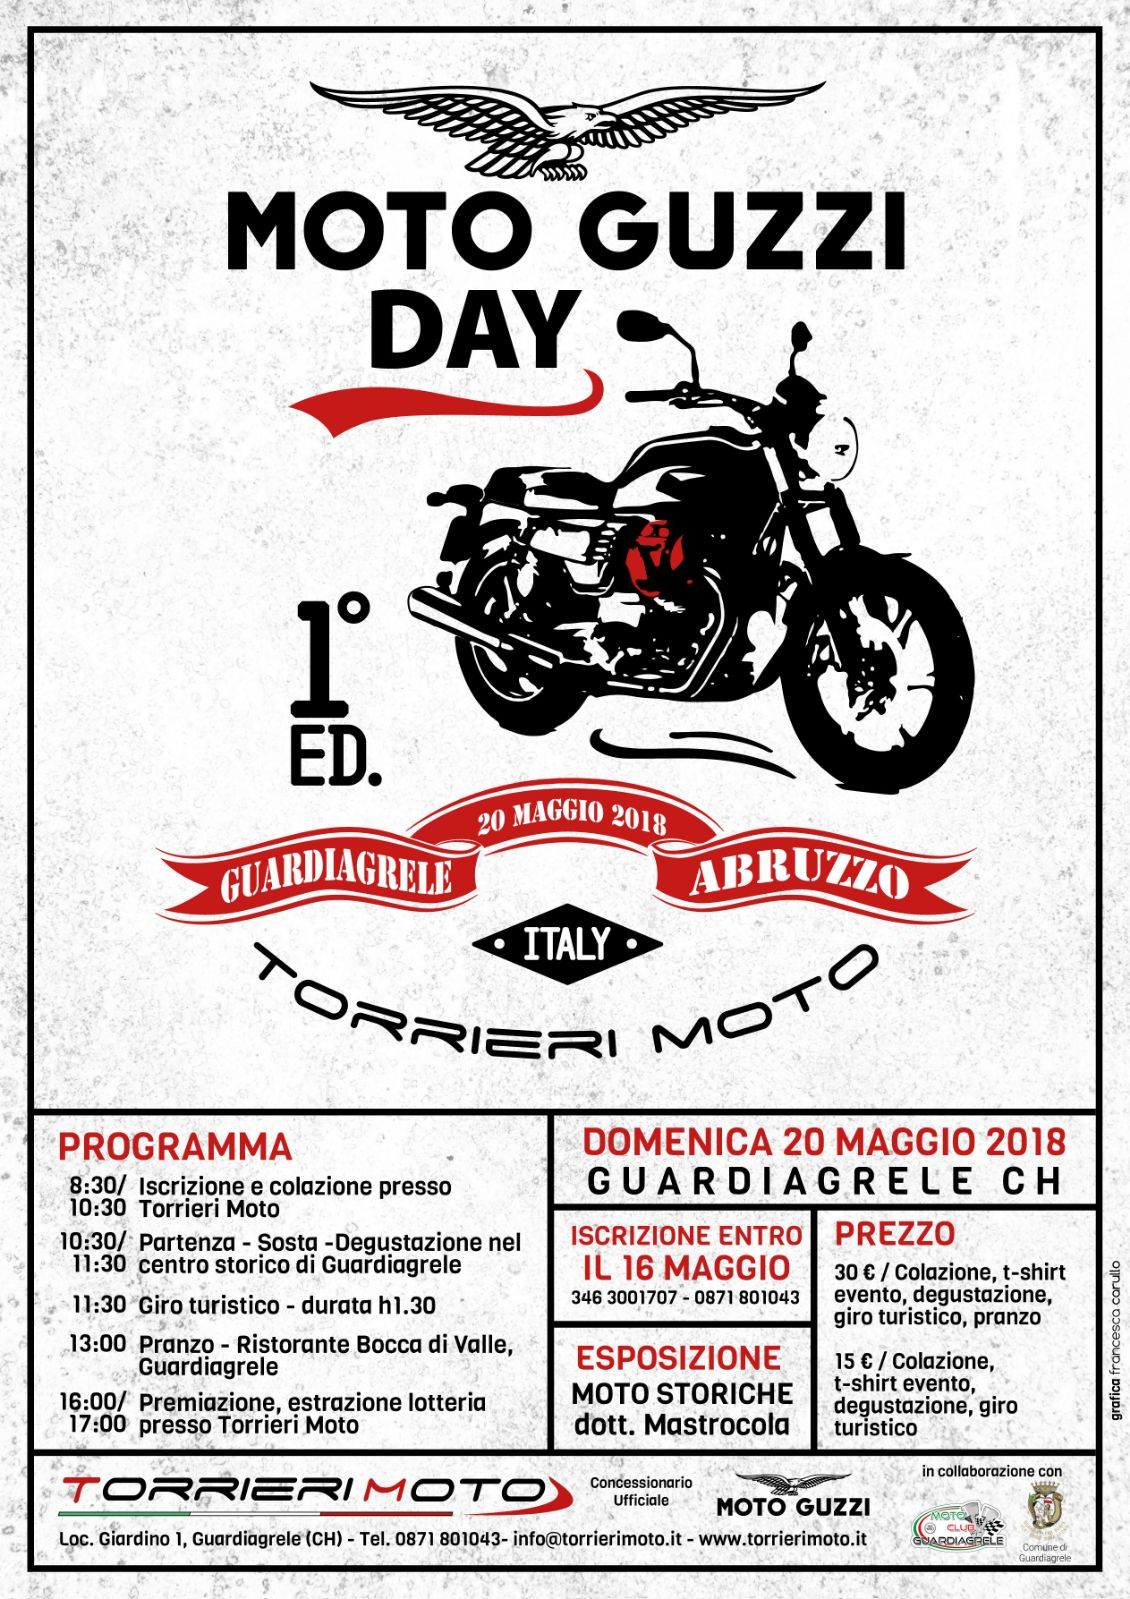 http://calendar.guzzi-days.net/media/contents/300d5b70e3a0027297dac5b59e412433086b0a91_WhatsApp%20Image%202018-04-08%20at%2011.49.04.jpeg